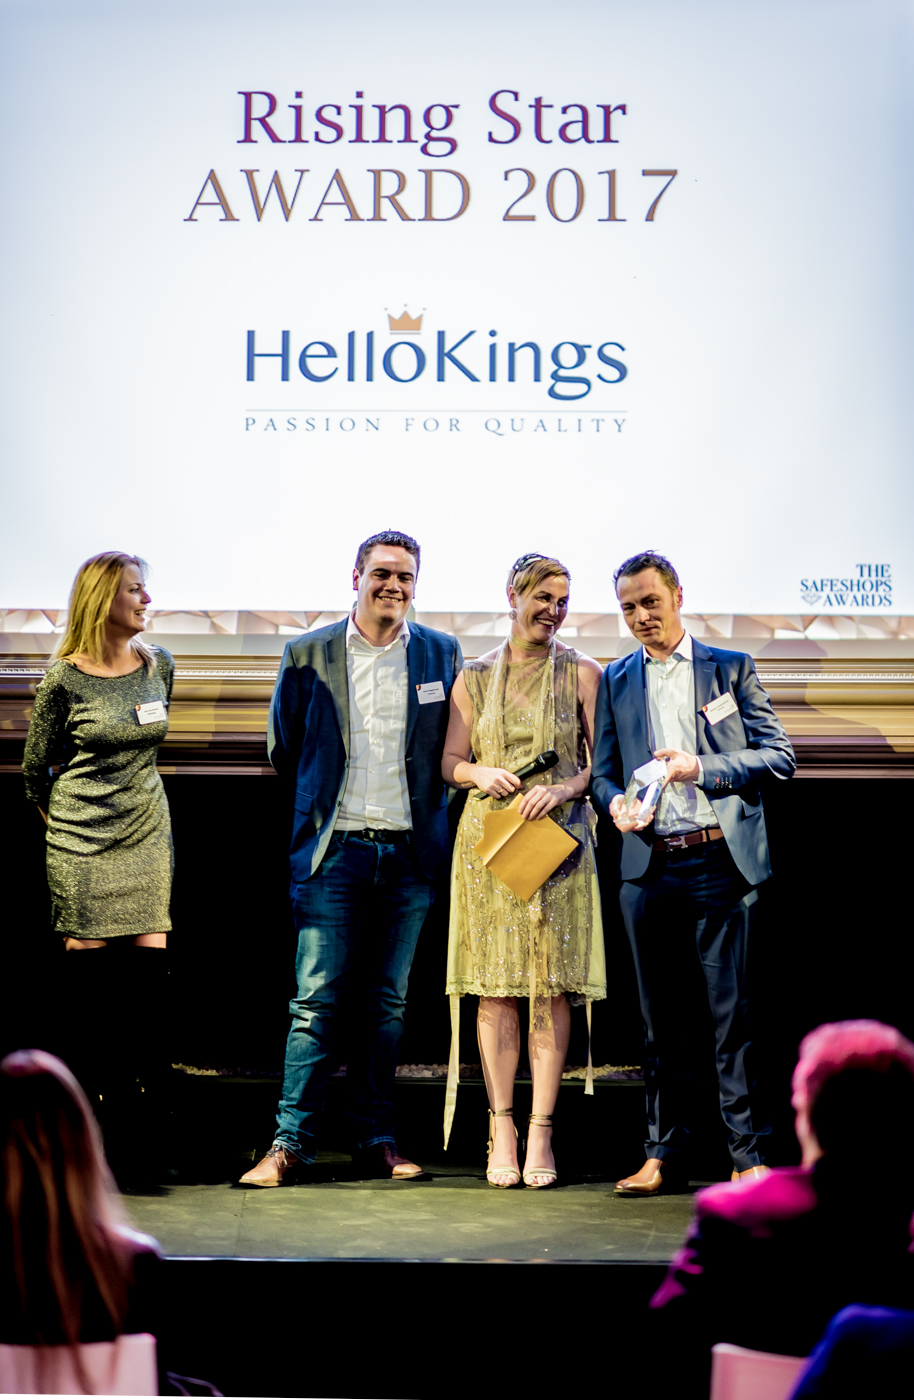 HelloKings winner of the Rising Star Award